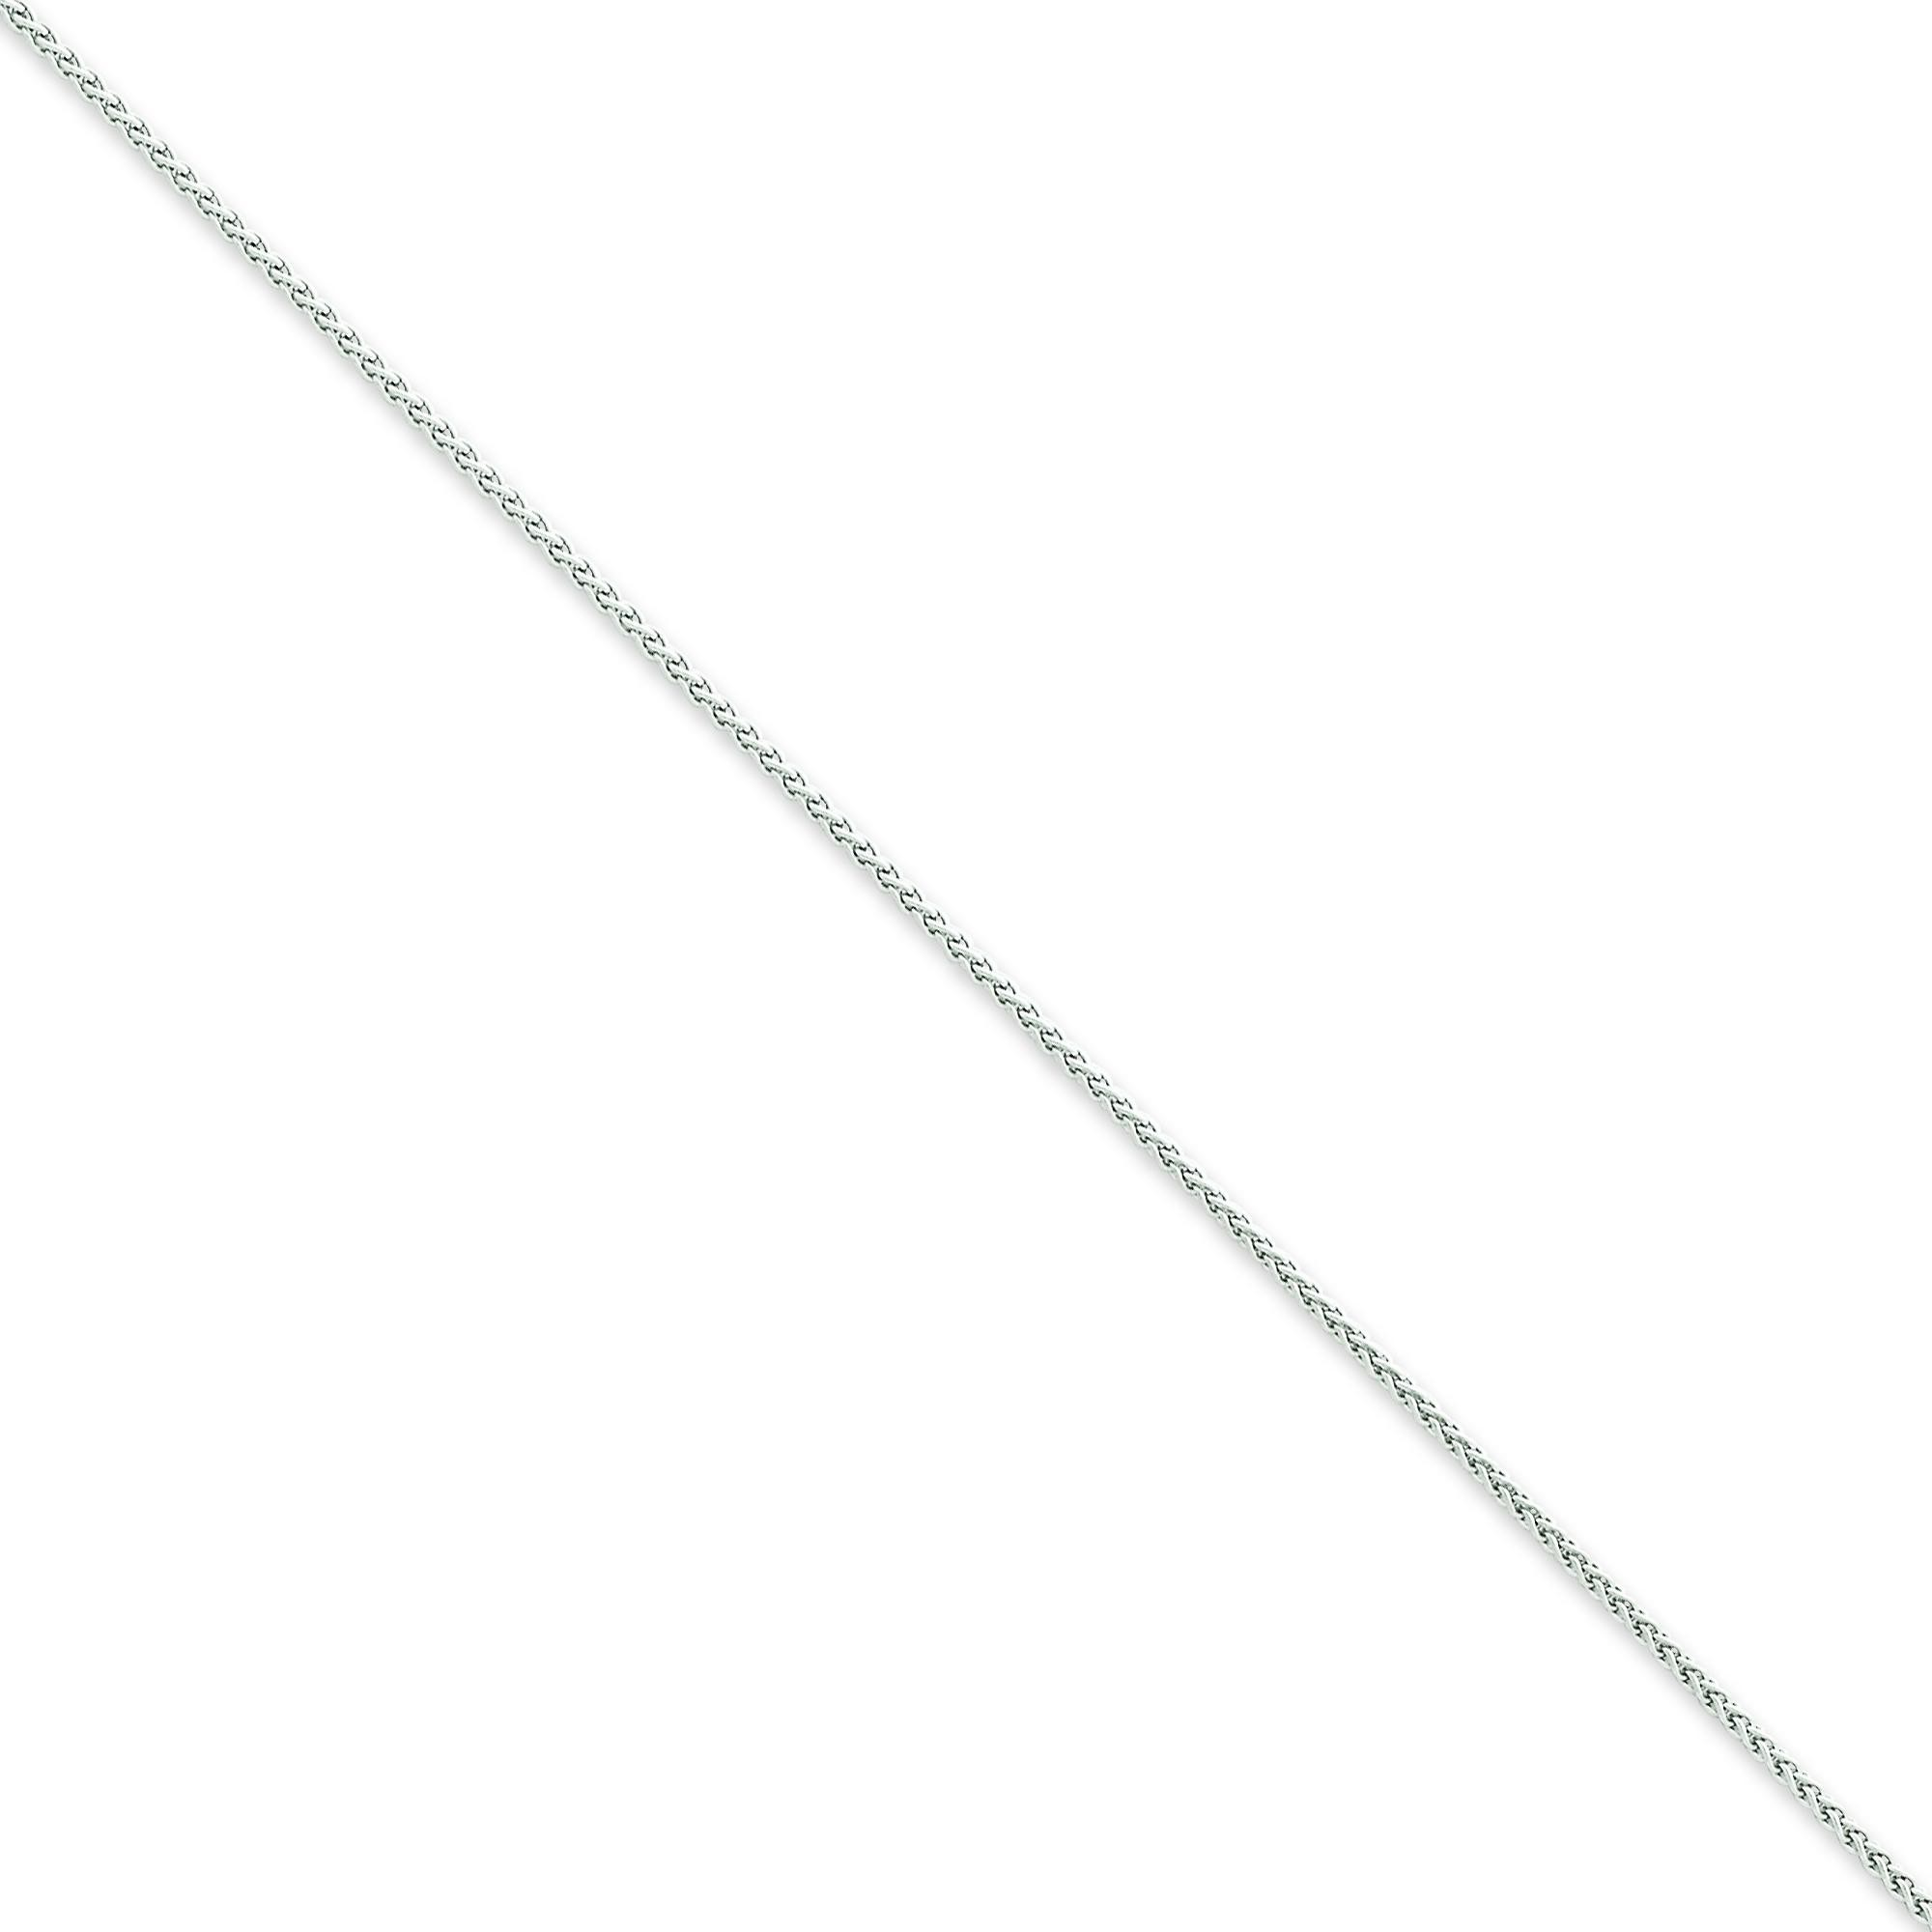 14k White Gold 6 inch 1.25 mm  Spiga Chain Bracelet